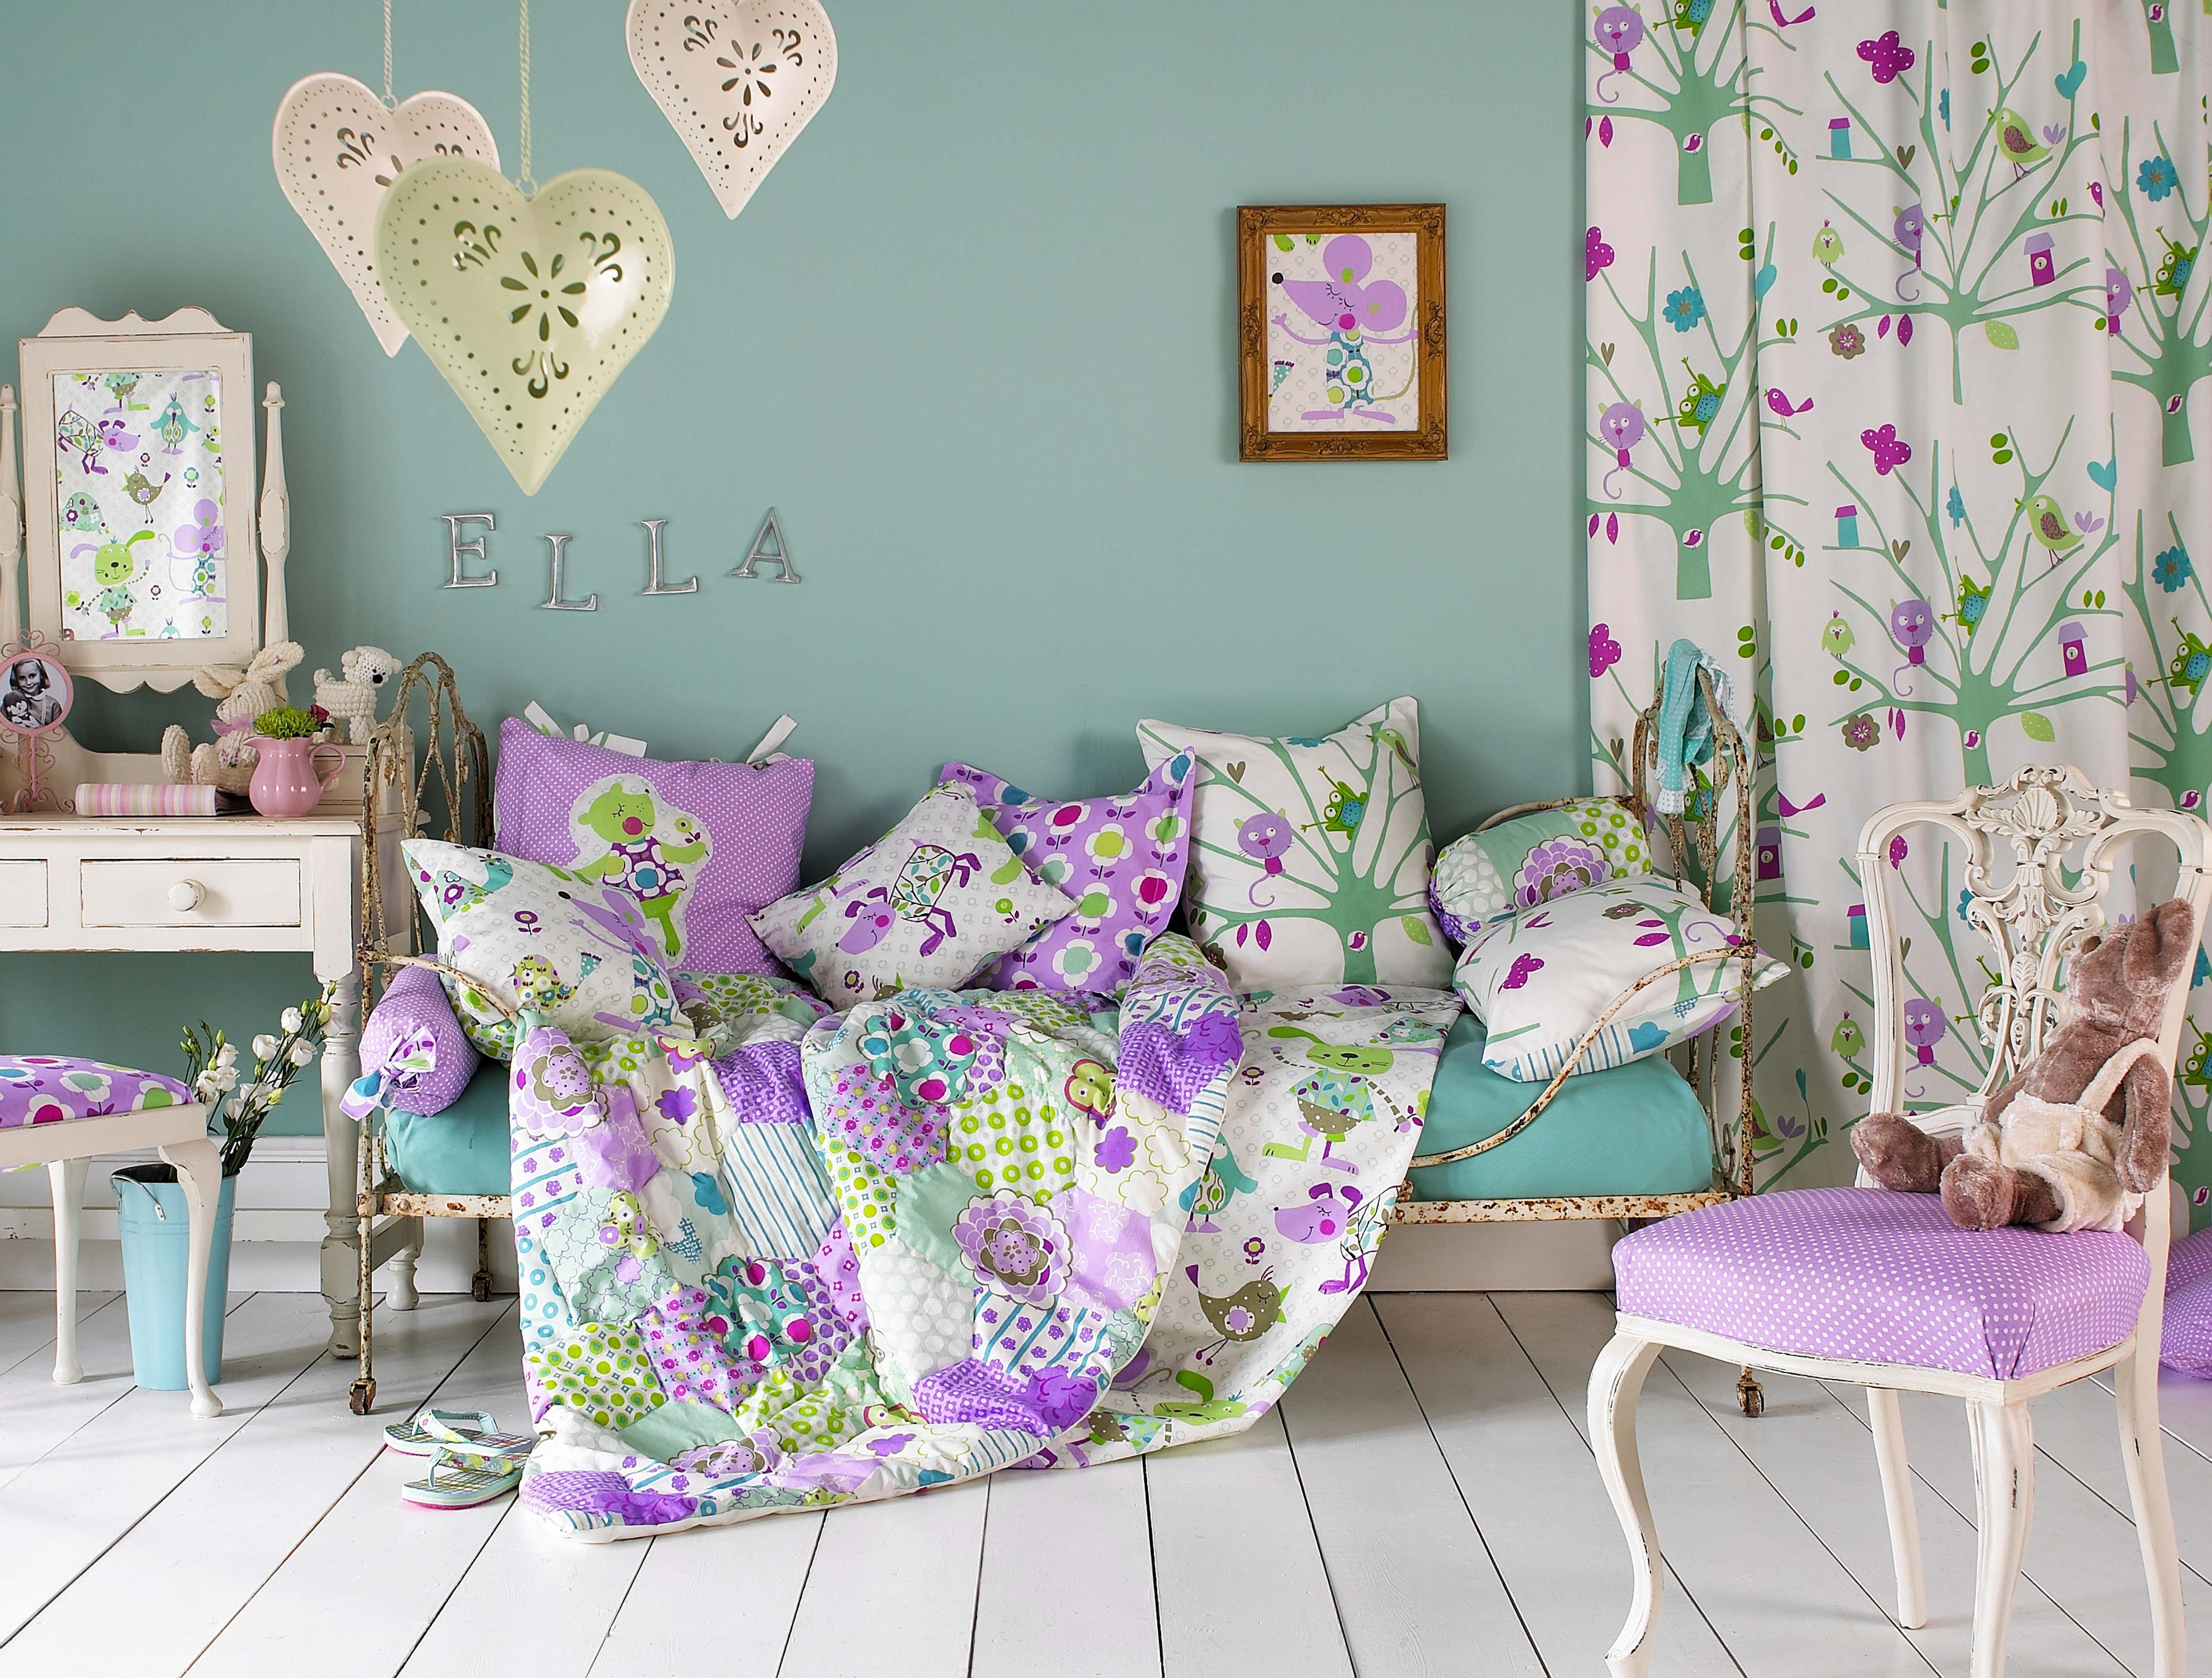 http://www.decoholic.org/wp-content/uploads/2013/03/spring_10_decorating.jpg